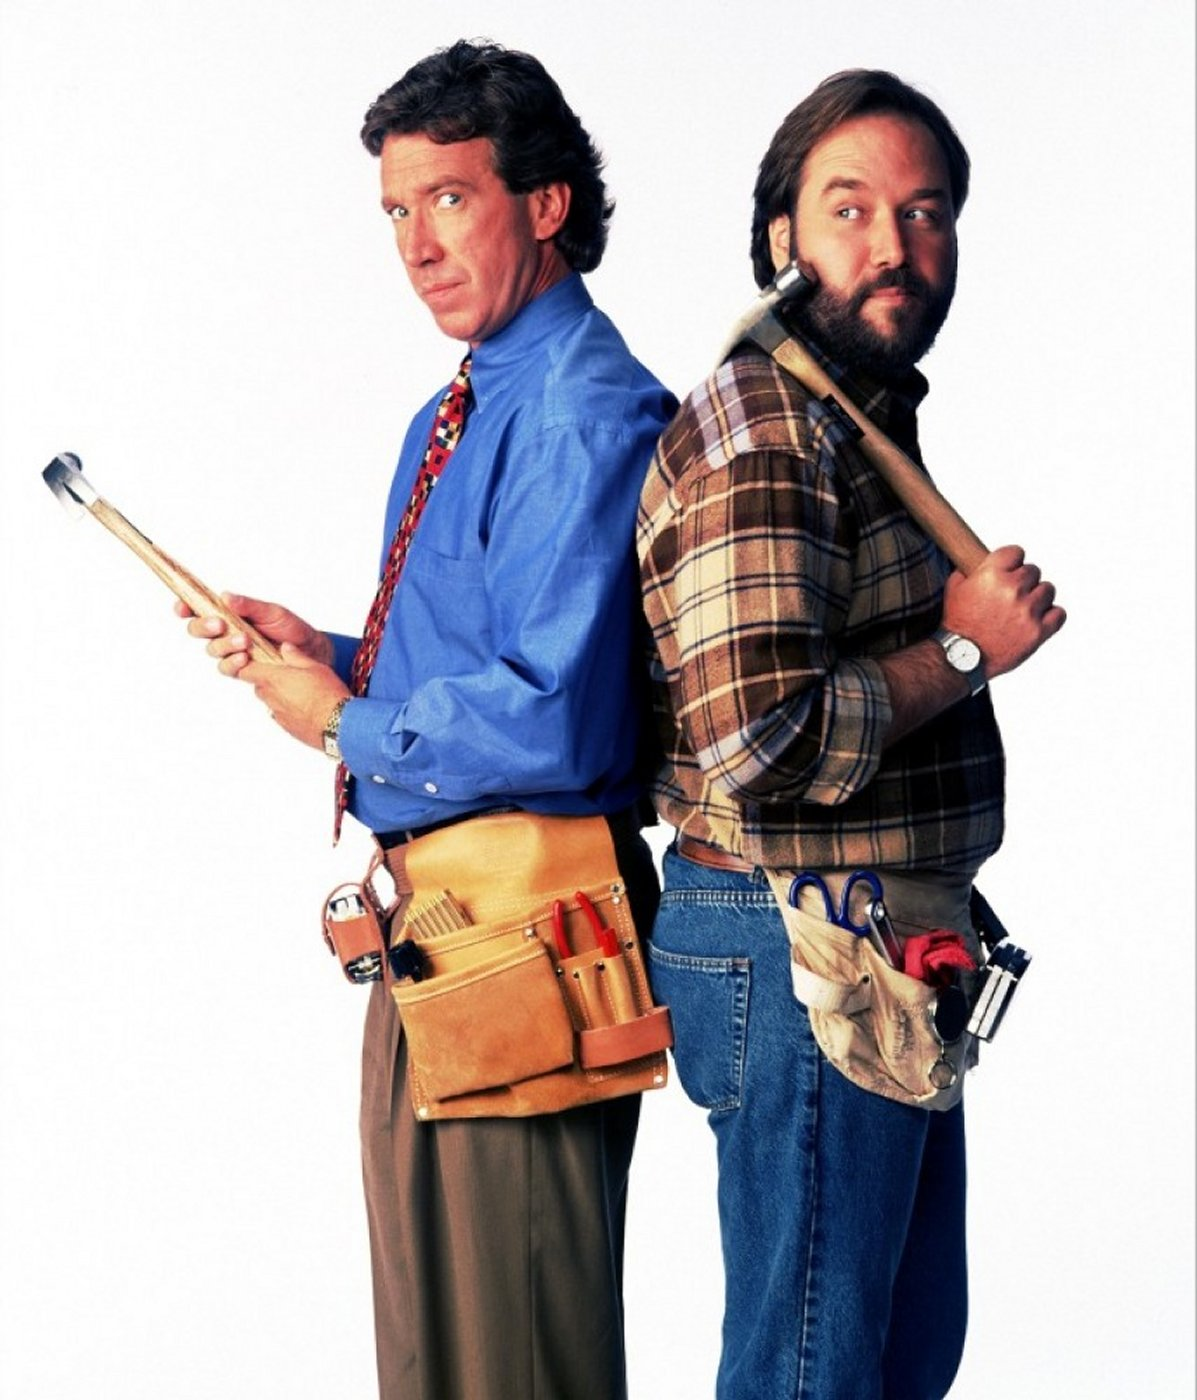 Home Improvement (TV Show) Photo (30858728